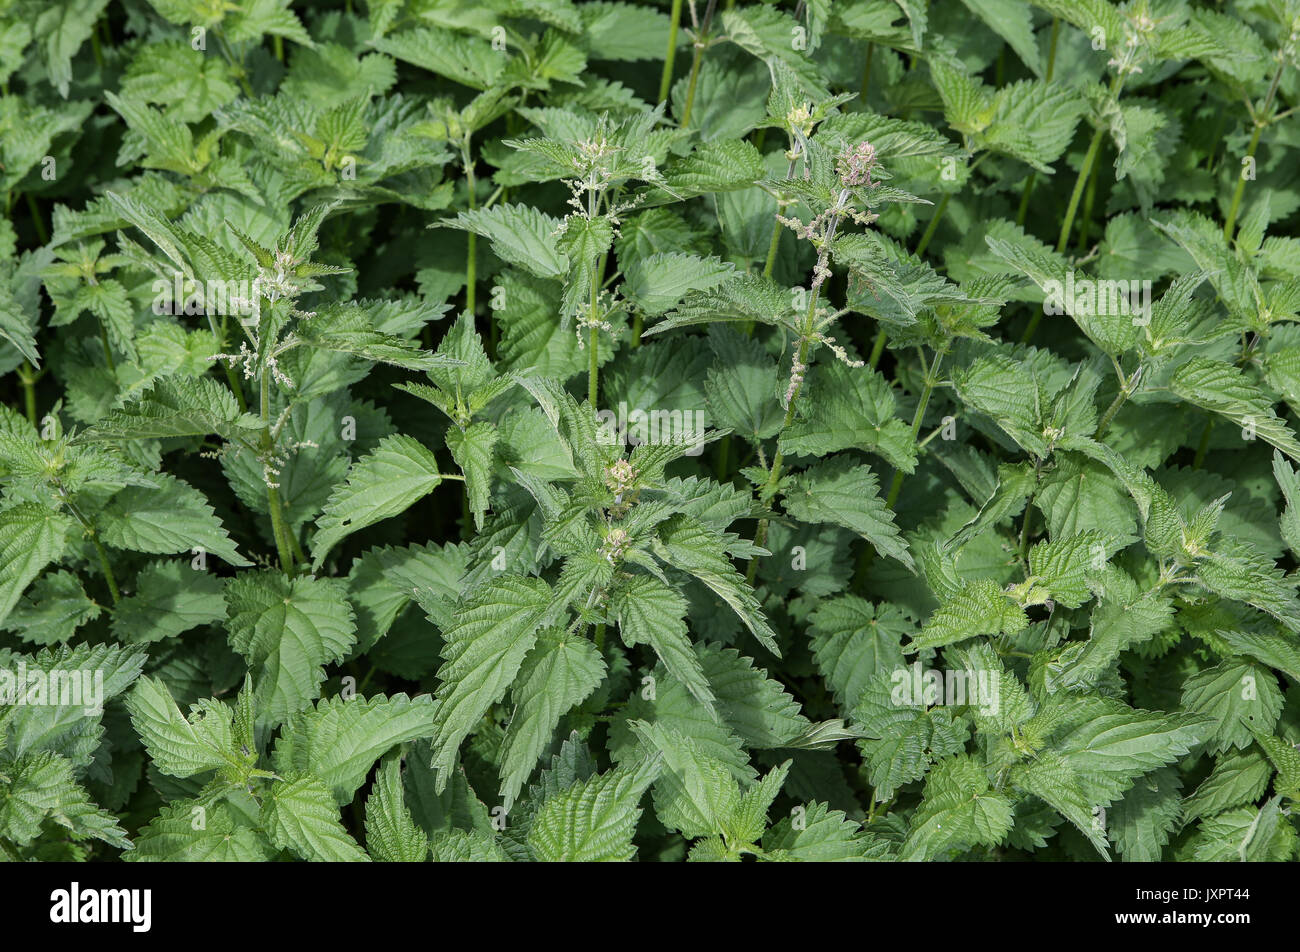 Stinging nettles (Urtica dioica) in High Wycombe, England on 16 August 2017. Photo by Andy Rowland. - Stock Image